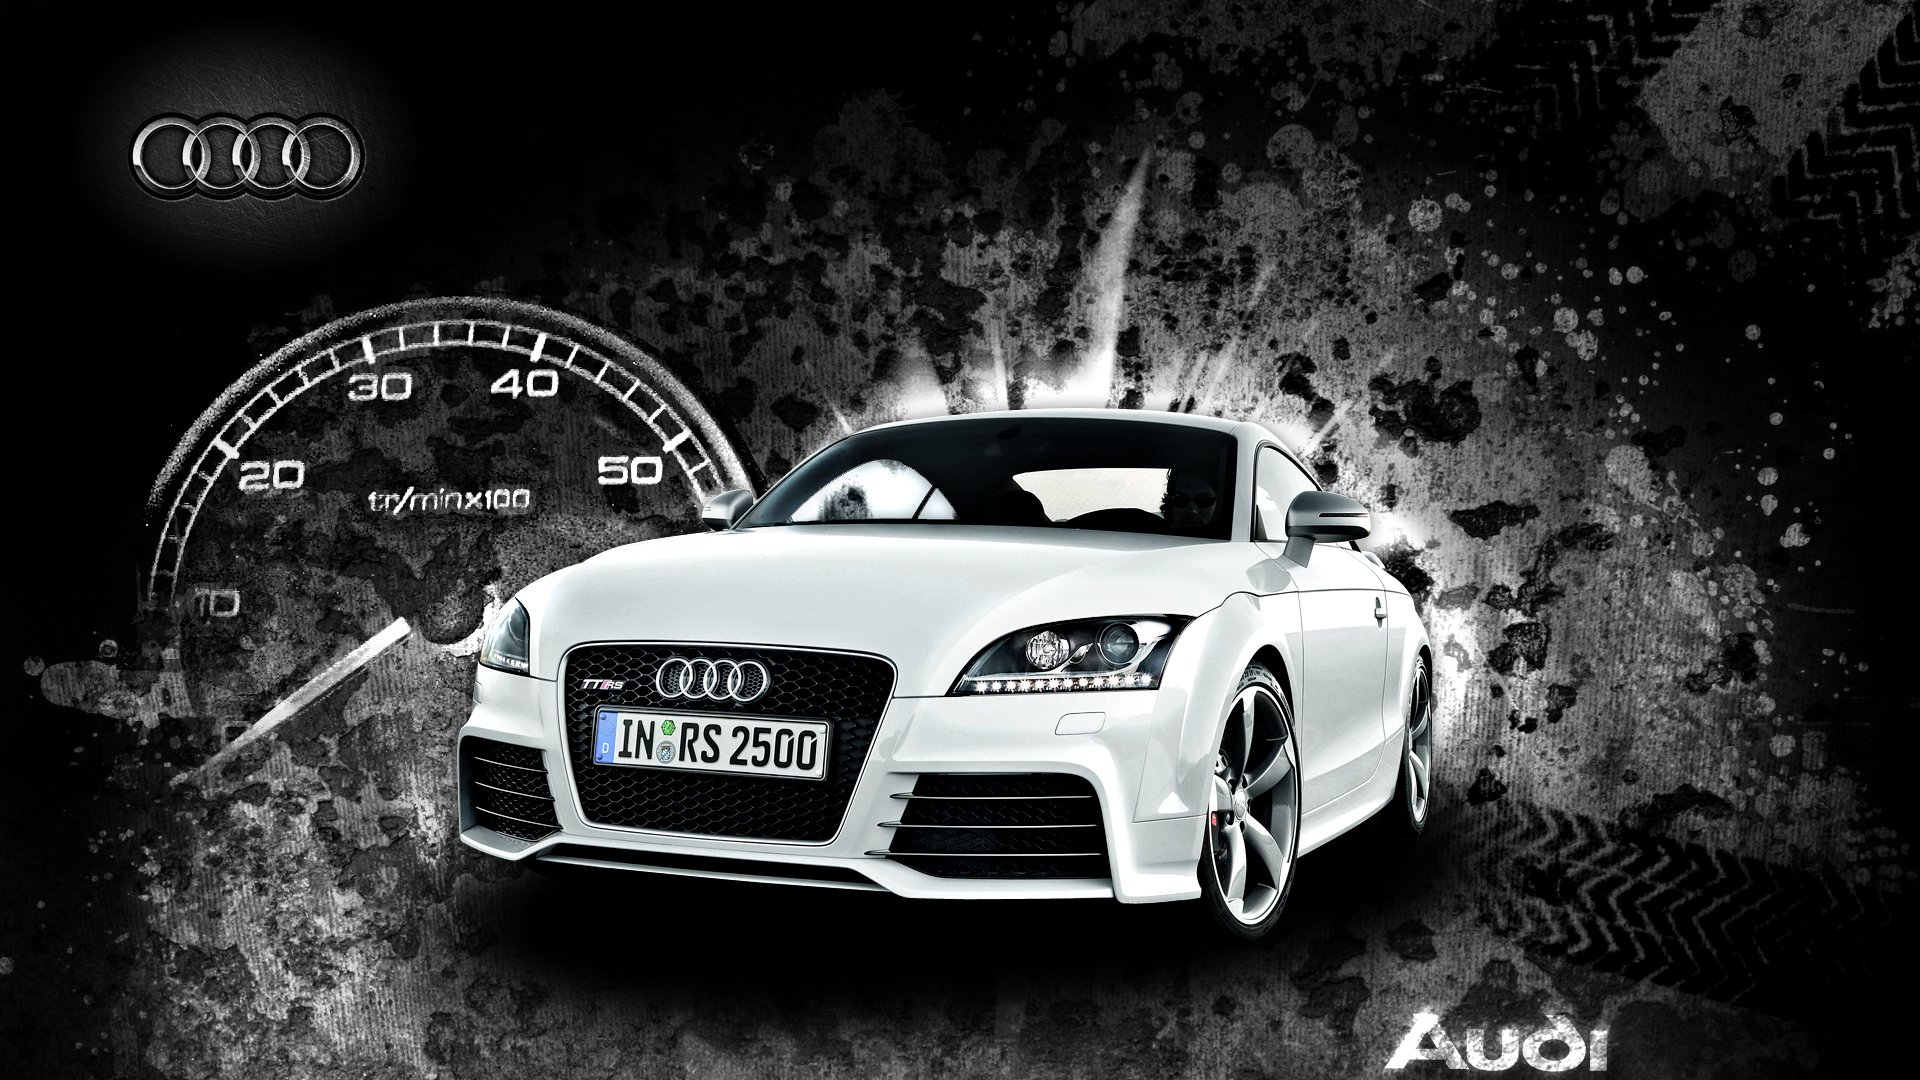 Audi TT RS by oxyde68 on DeviantArt